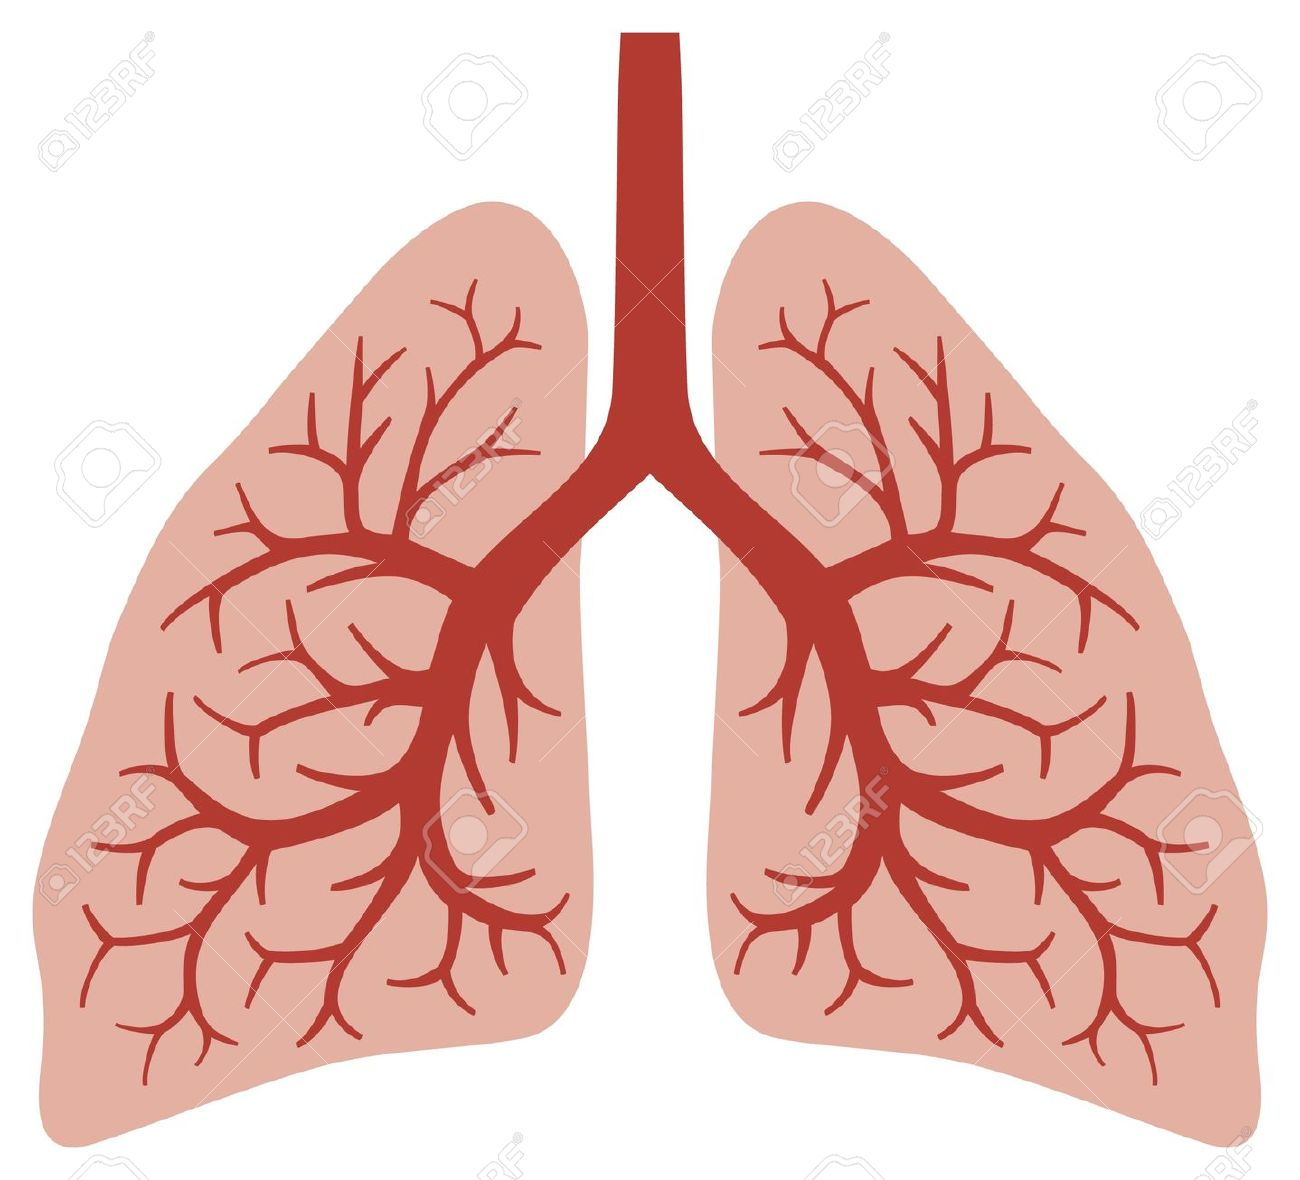 Human Lungs Bronchial System, Human Organs, Lungs Anatomy Royalty.